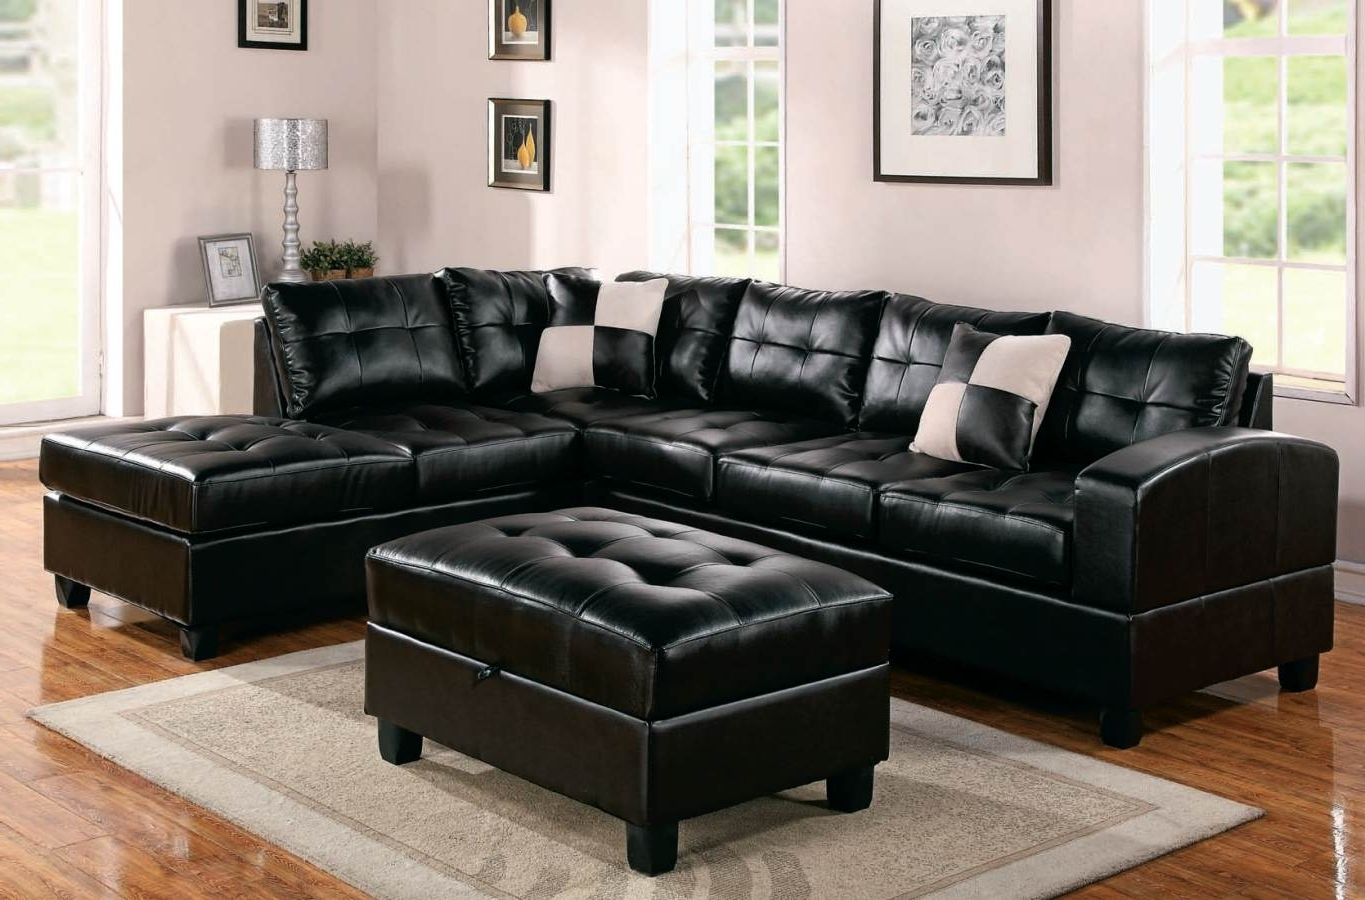 High Quality Sectional Sofas Within Newest Sectional Sofa Deals (View 9 of 20)